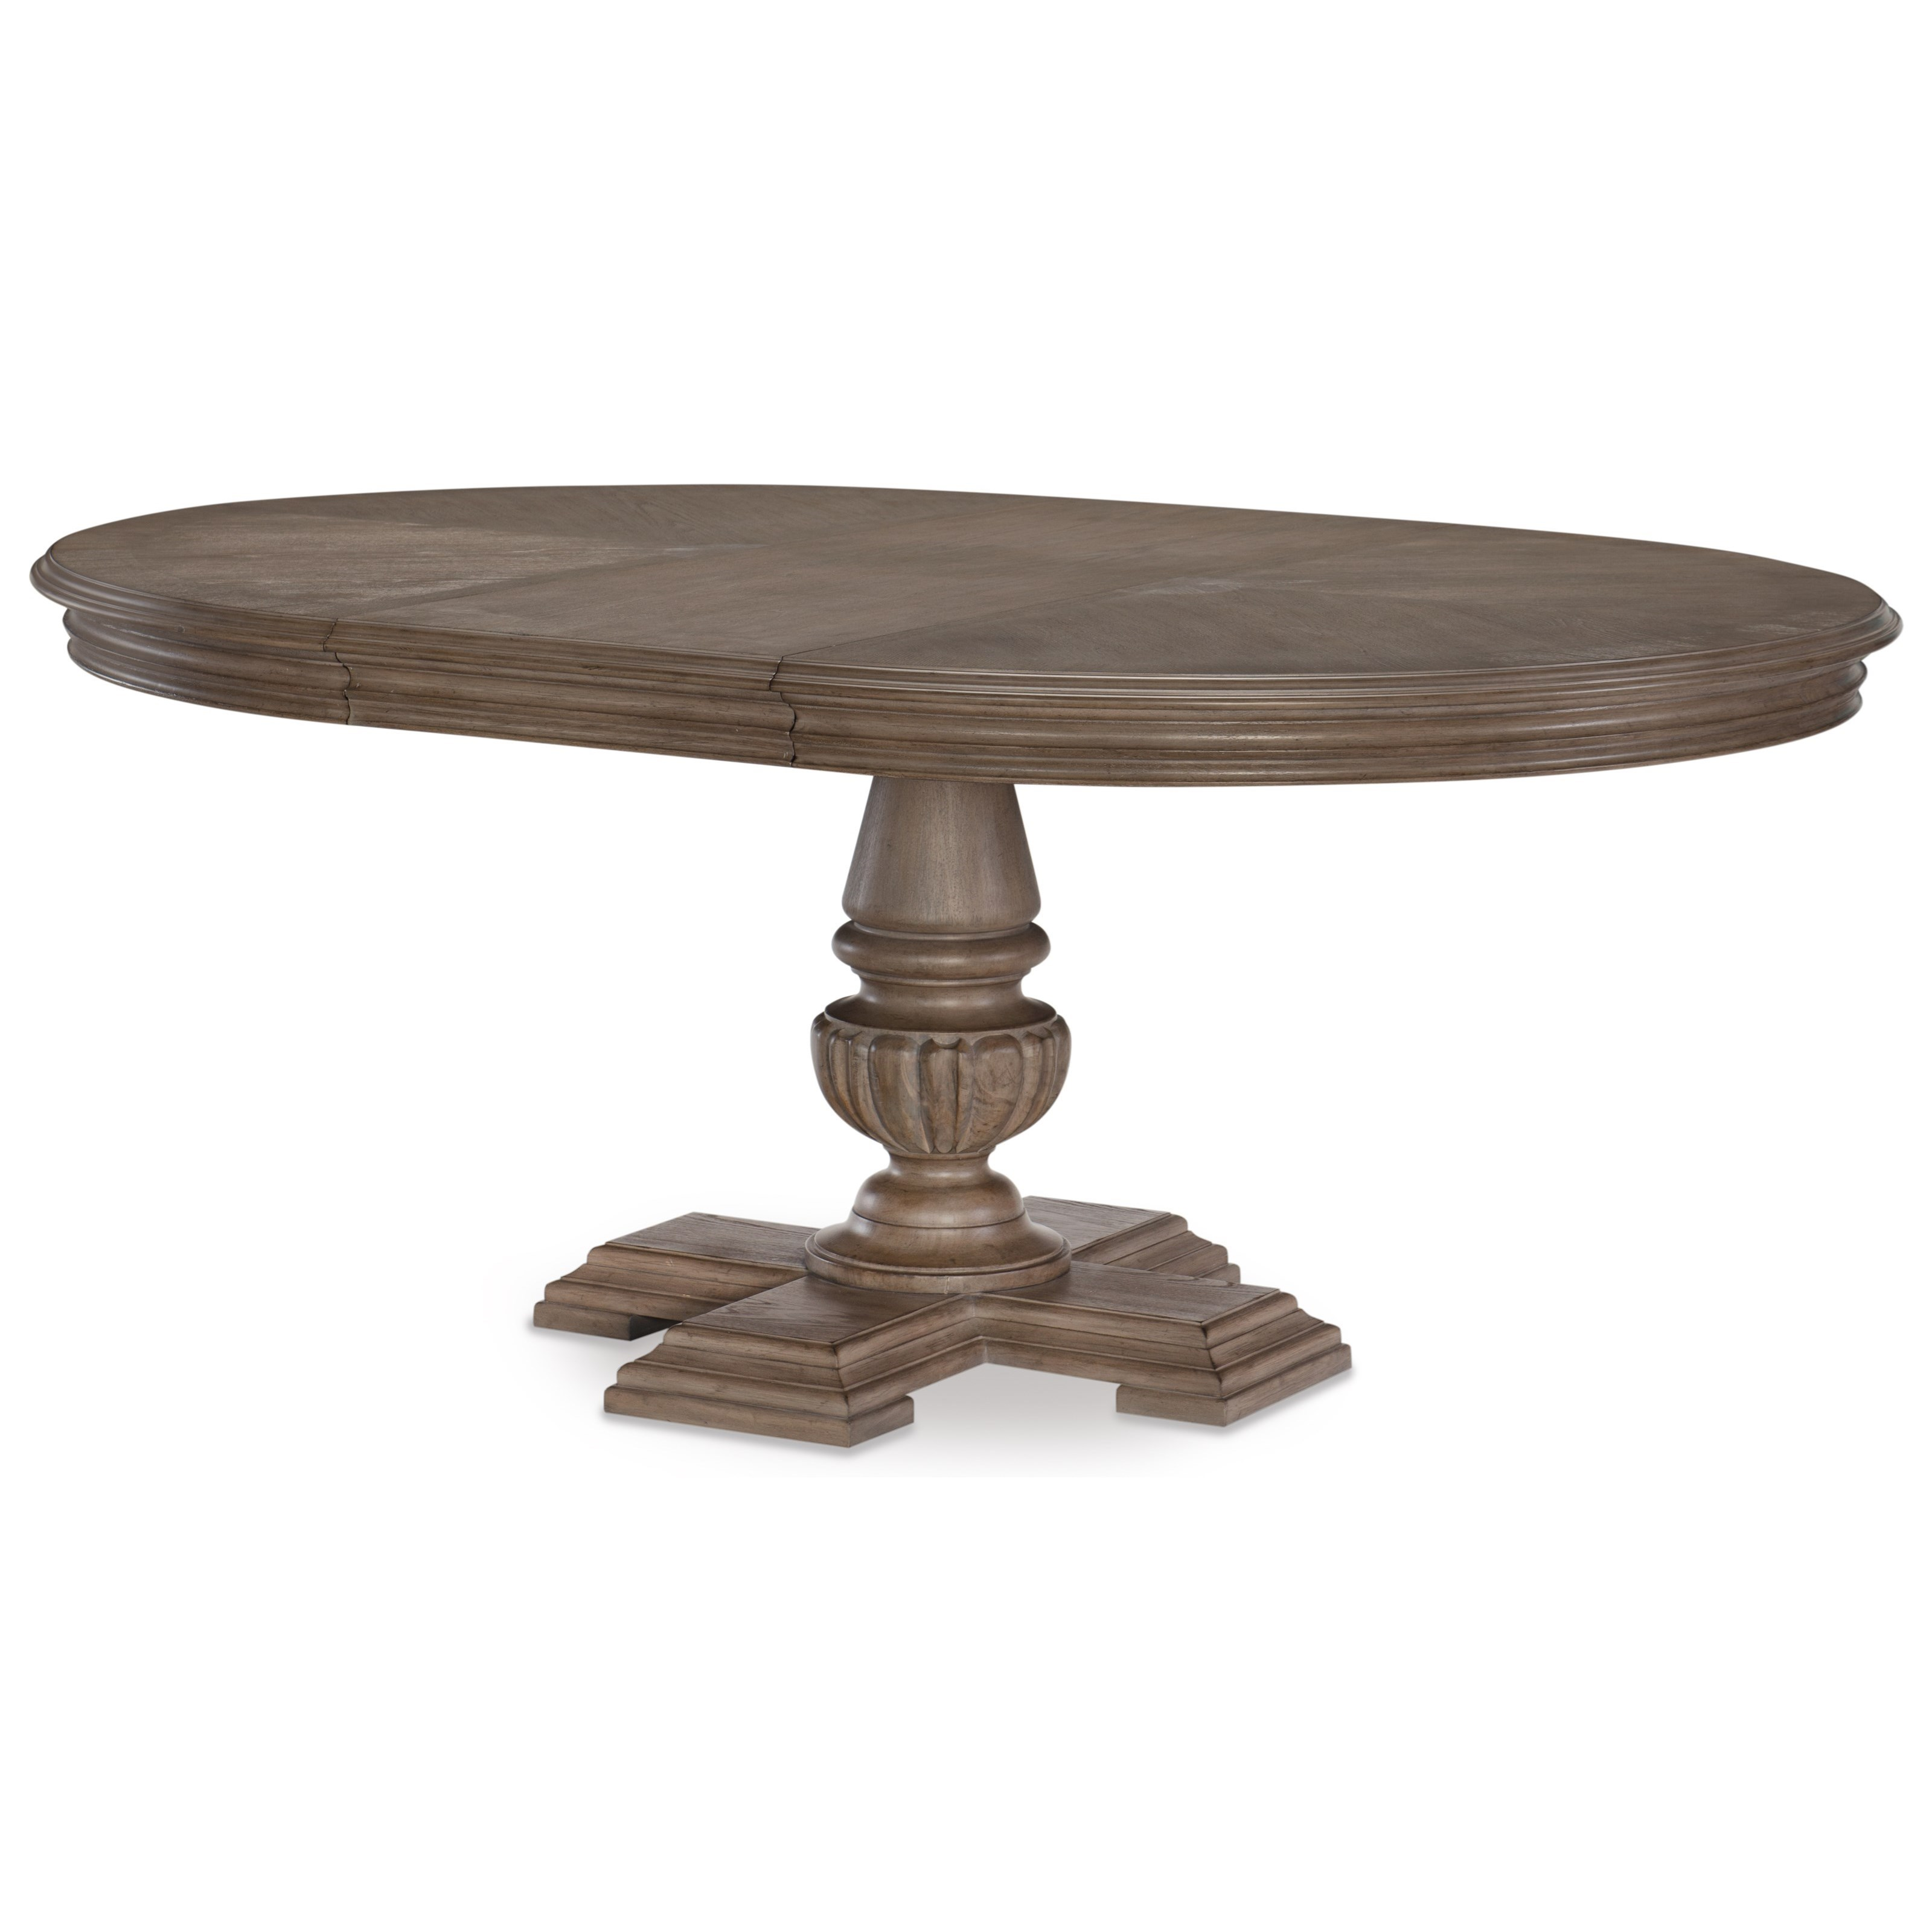 Legacy Classic Manor House Relaxed Vintage Round Pedestal